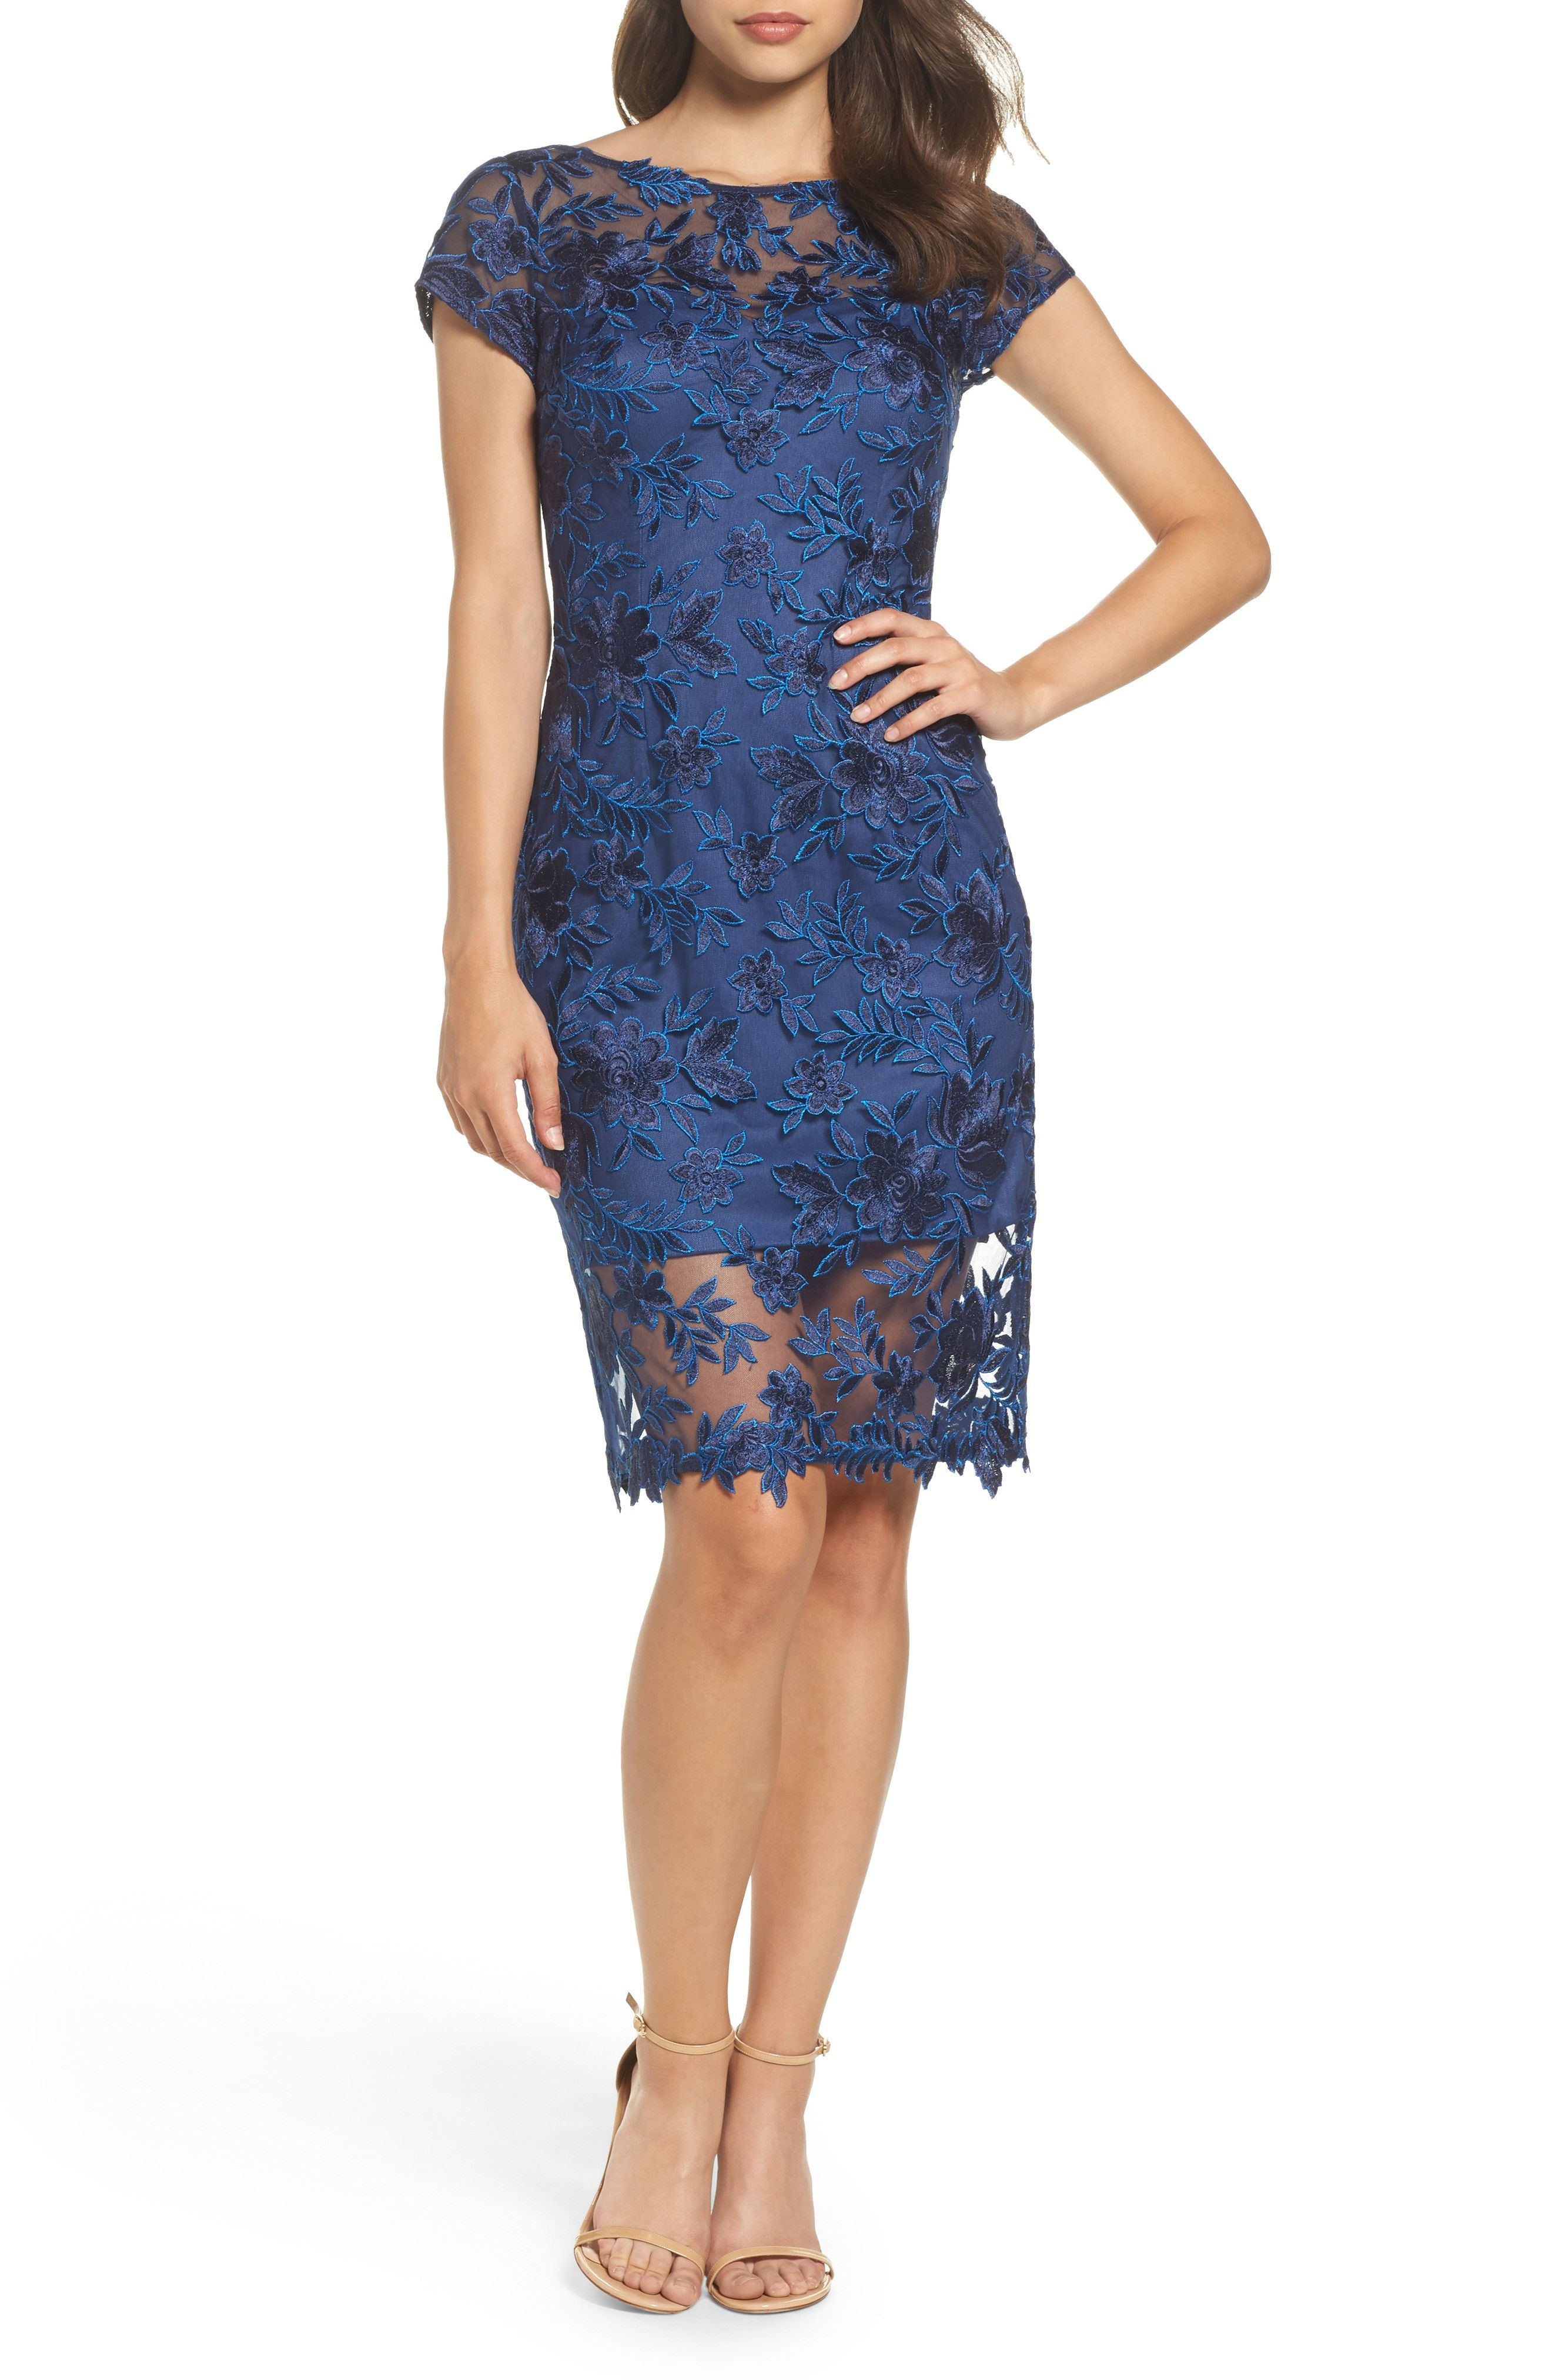 Sheath dresses for wedding guest  Illusion Detail Lace Sheath Dress Navy  My Style  Pinterest